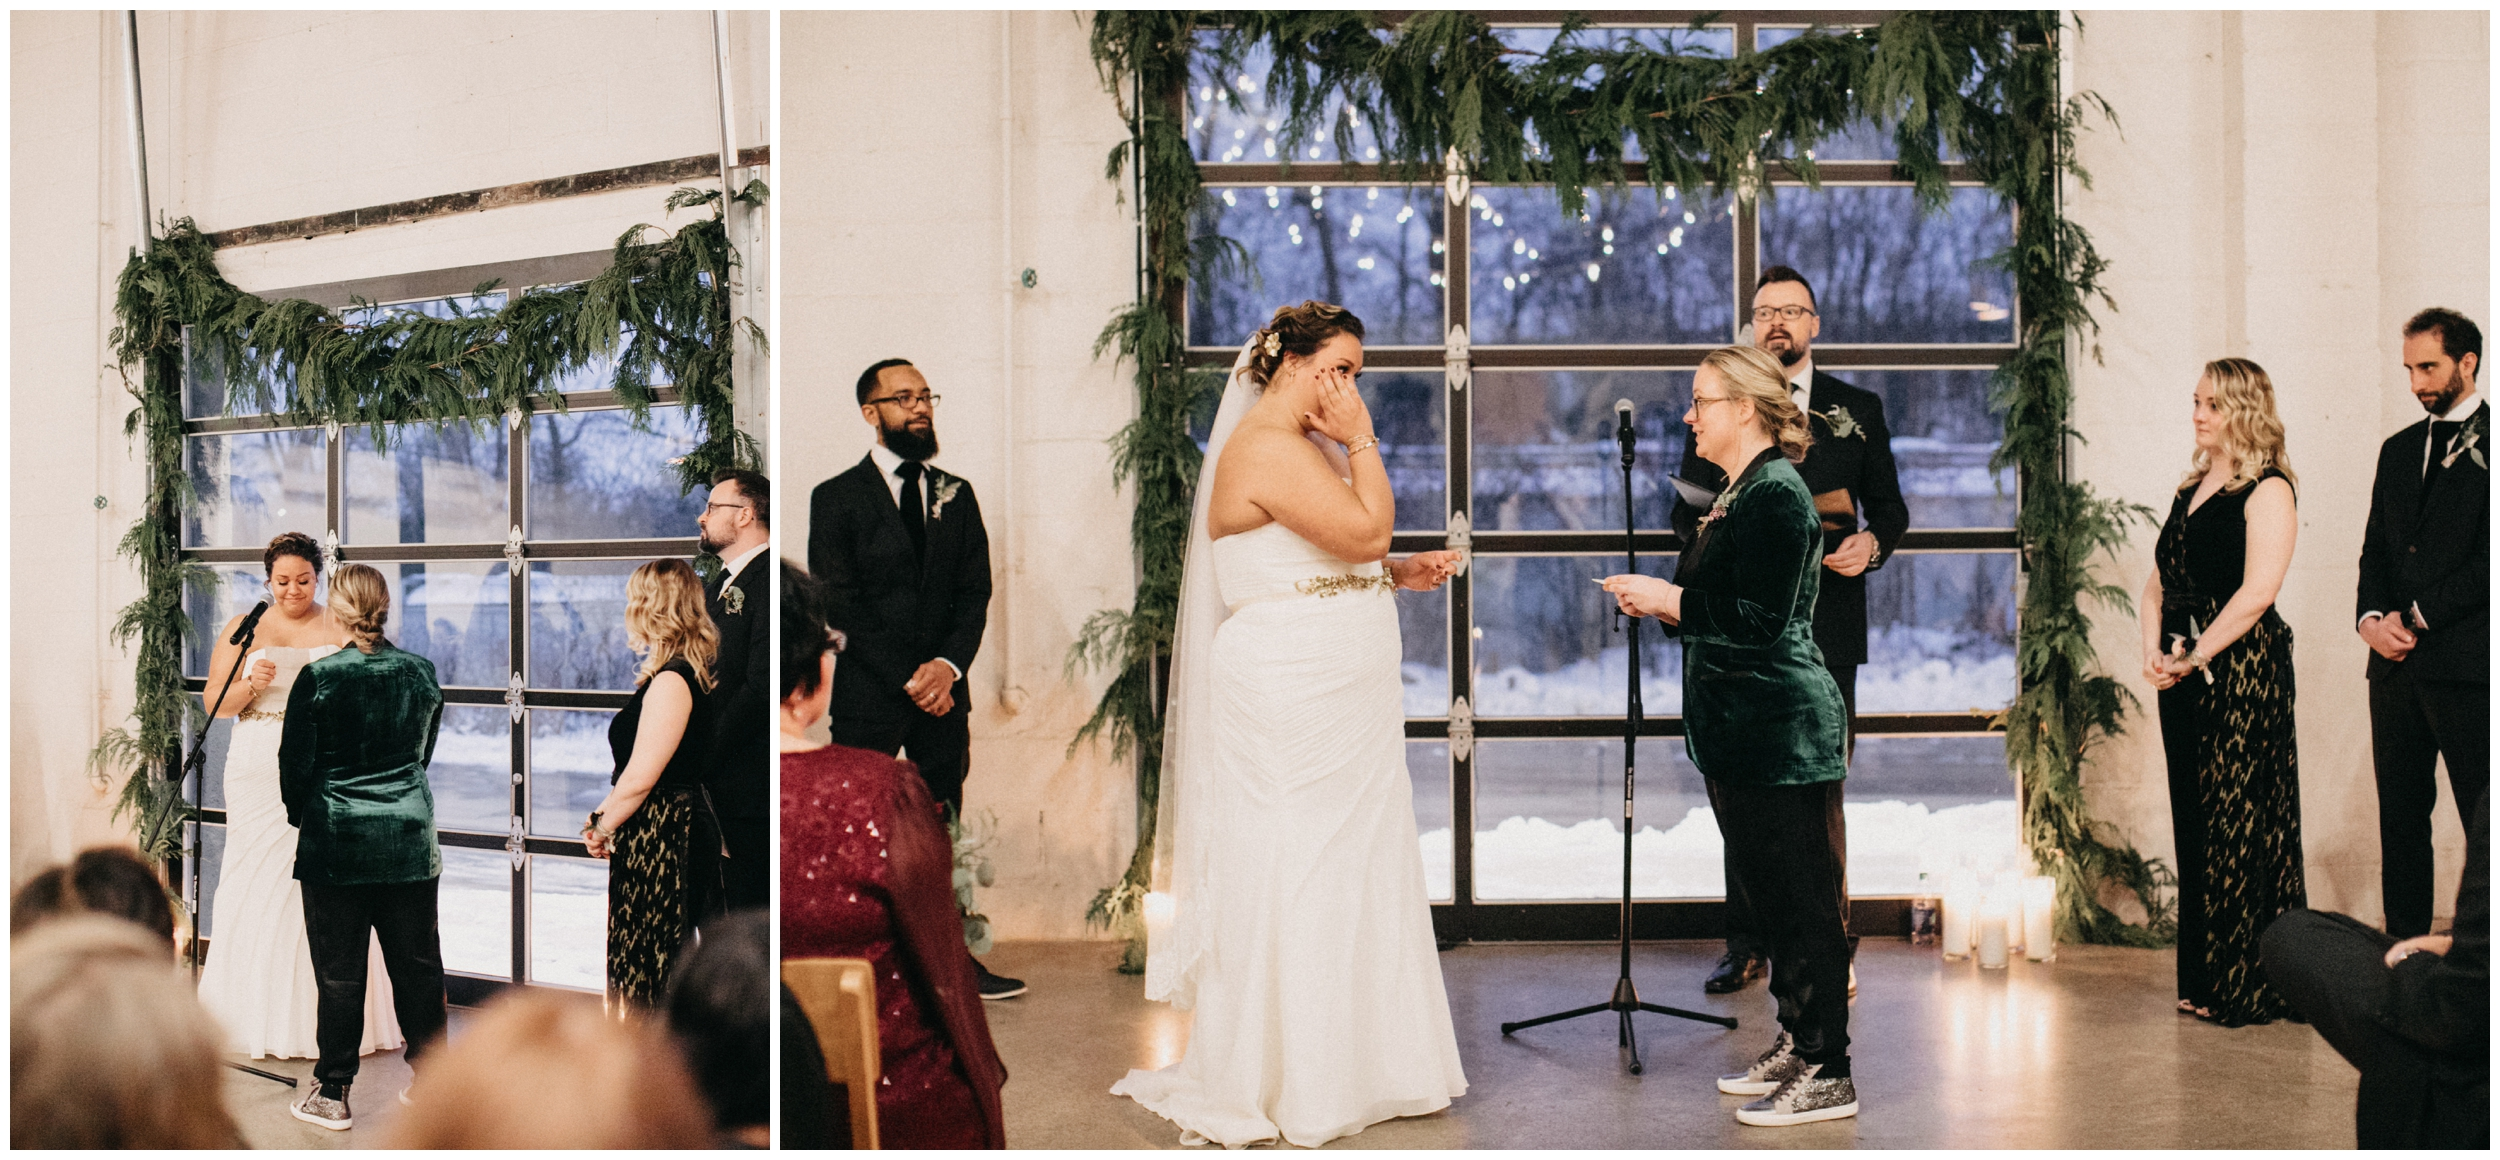 Indoor winter wedding ceremony at Paikka in St Paul Minnesota